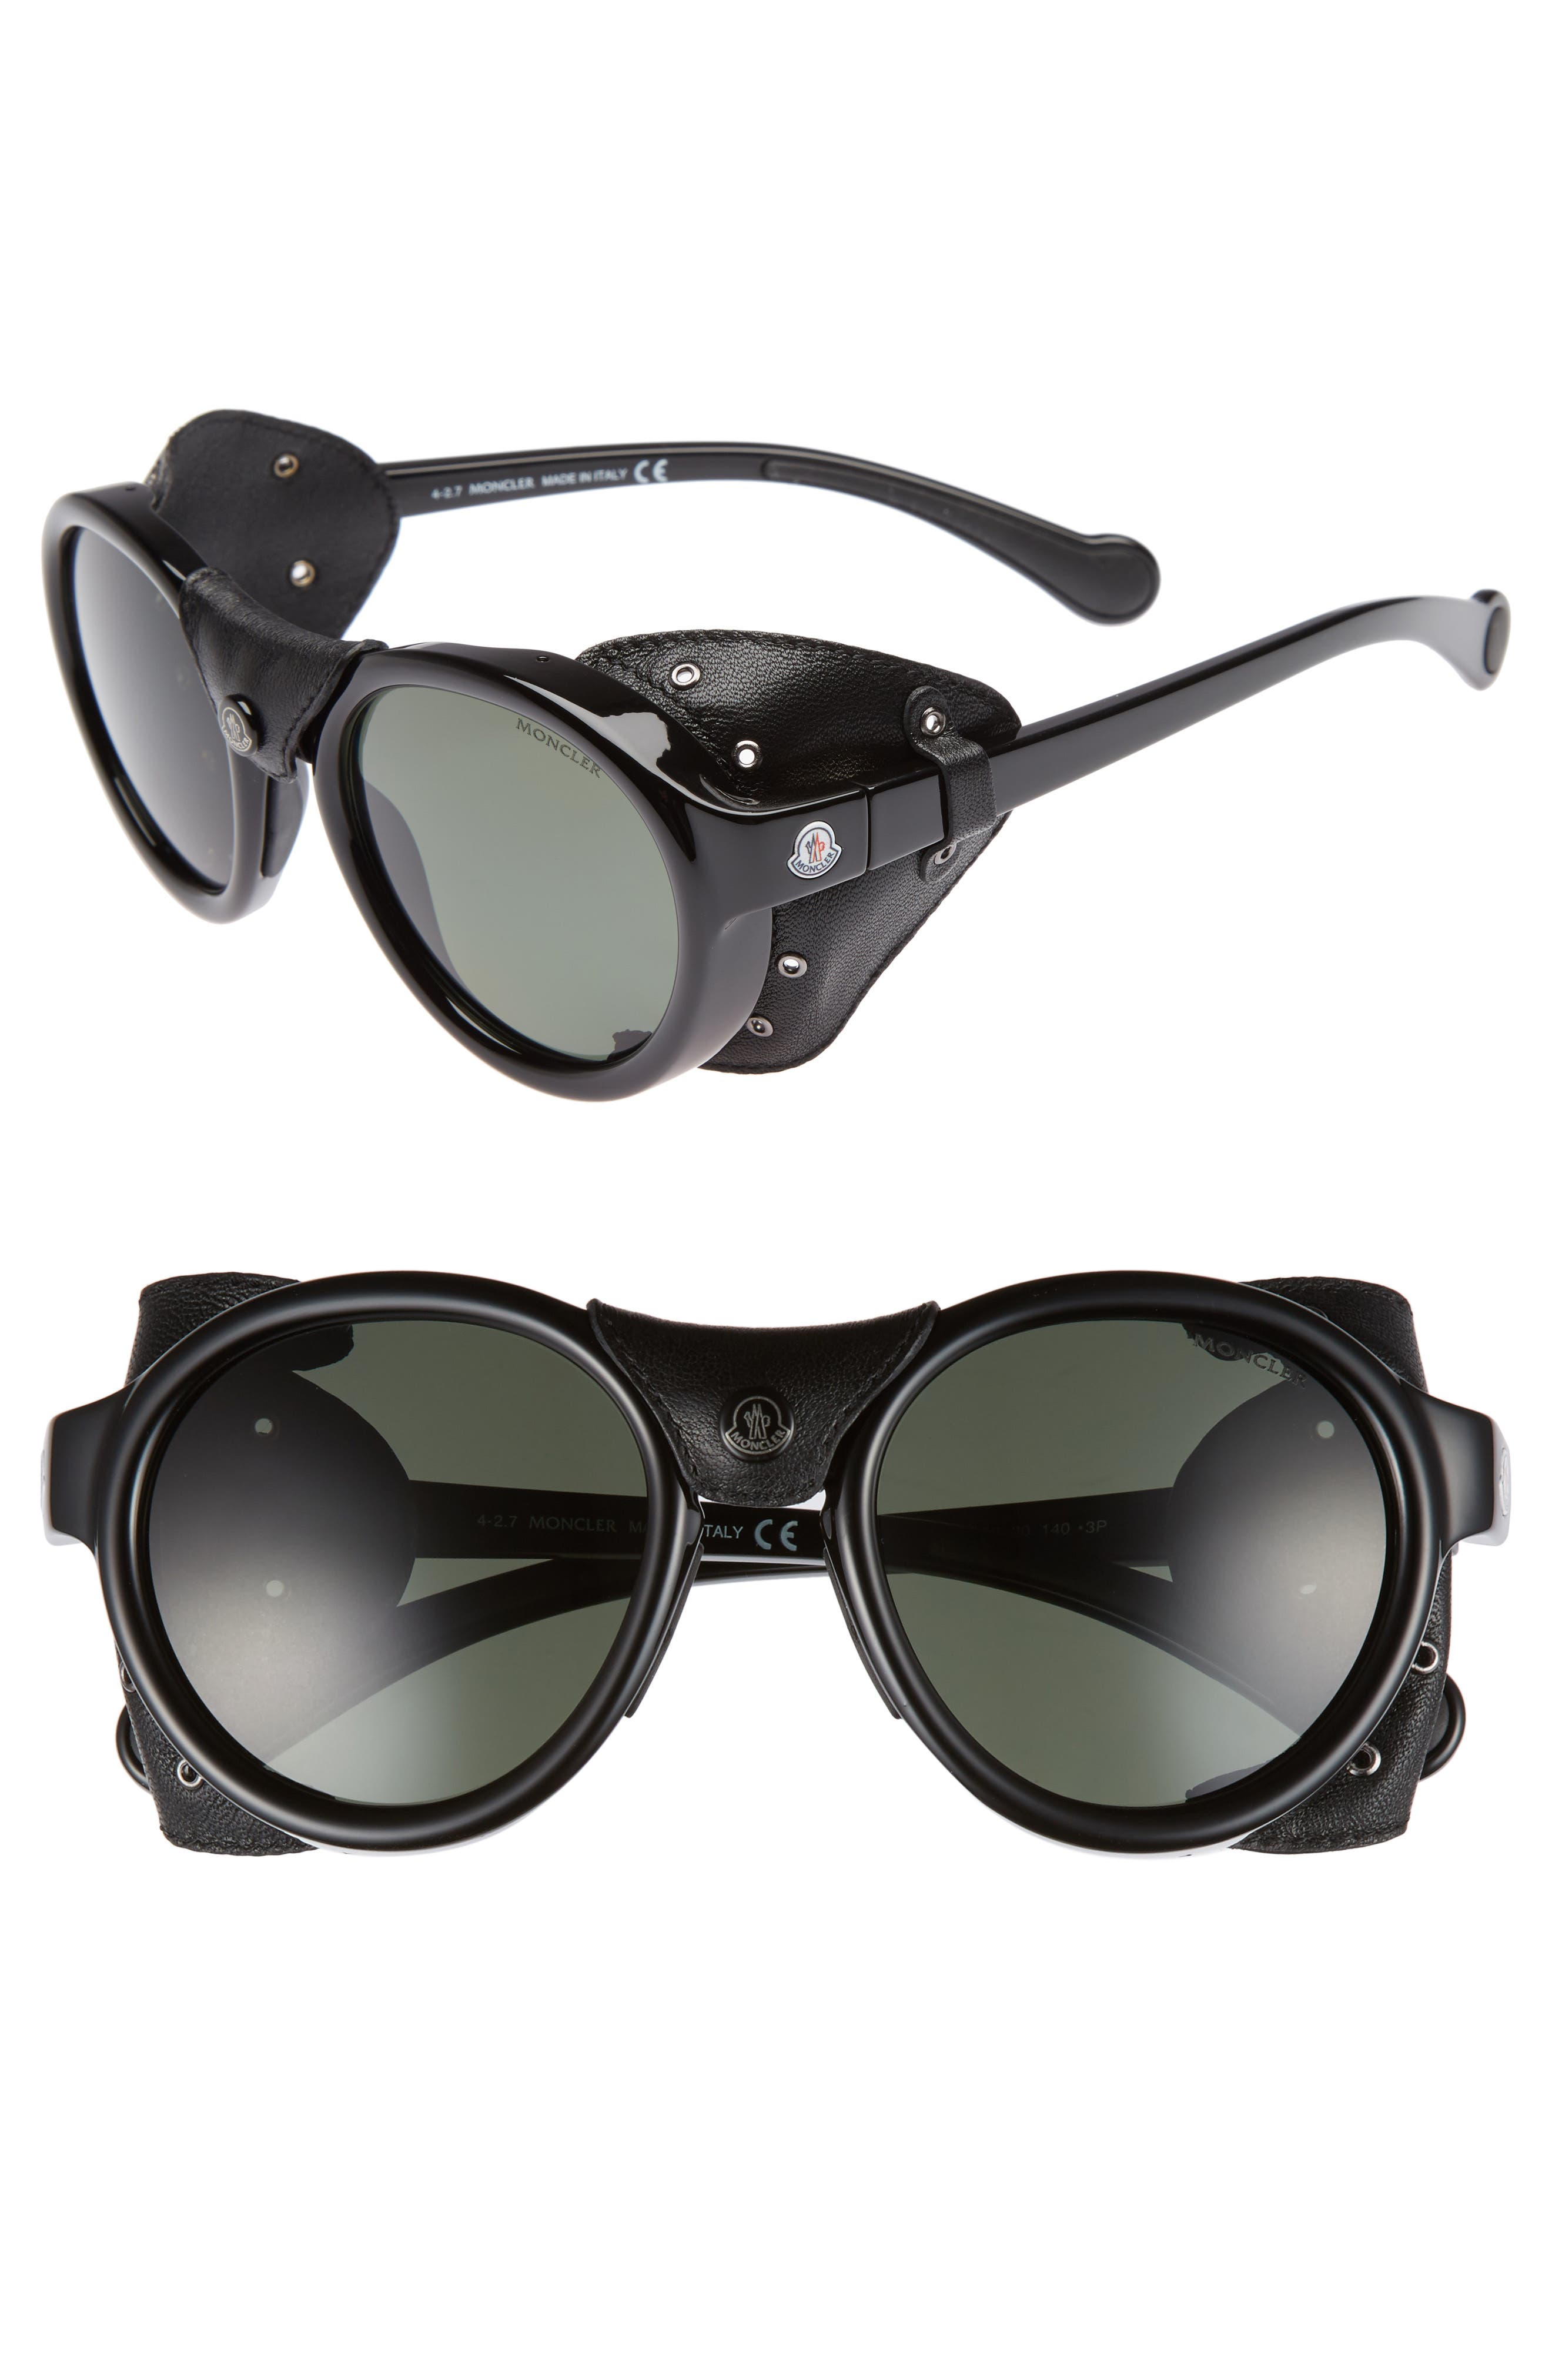 Moncler 52mm Polarized Round Leather Shield Sunglasses